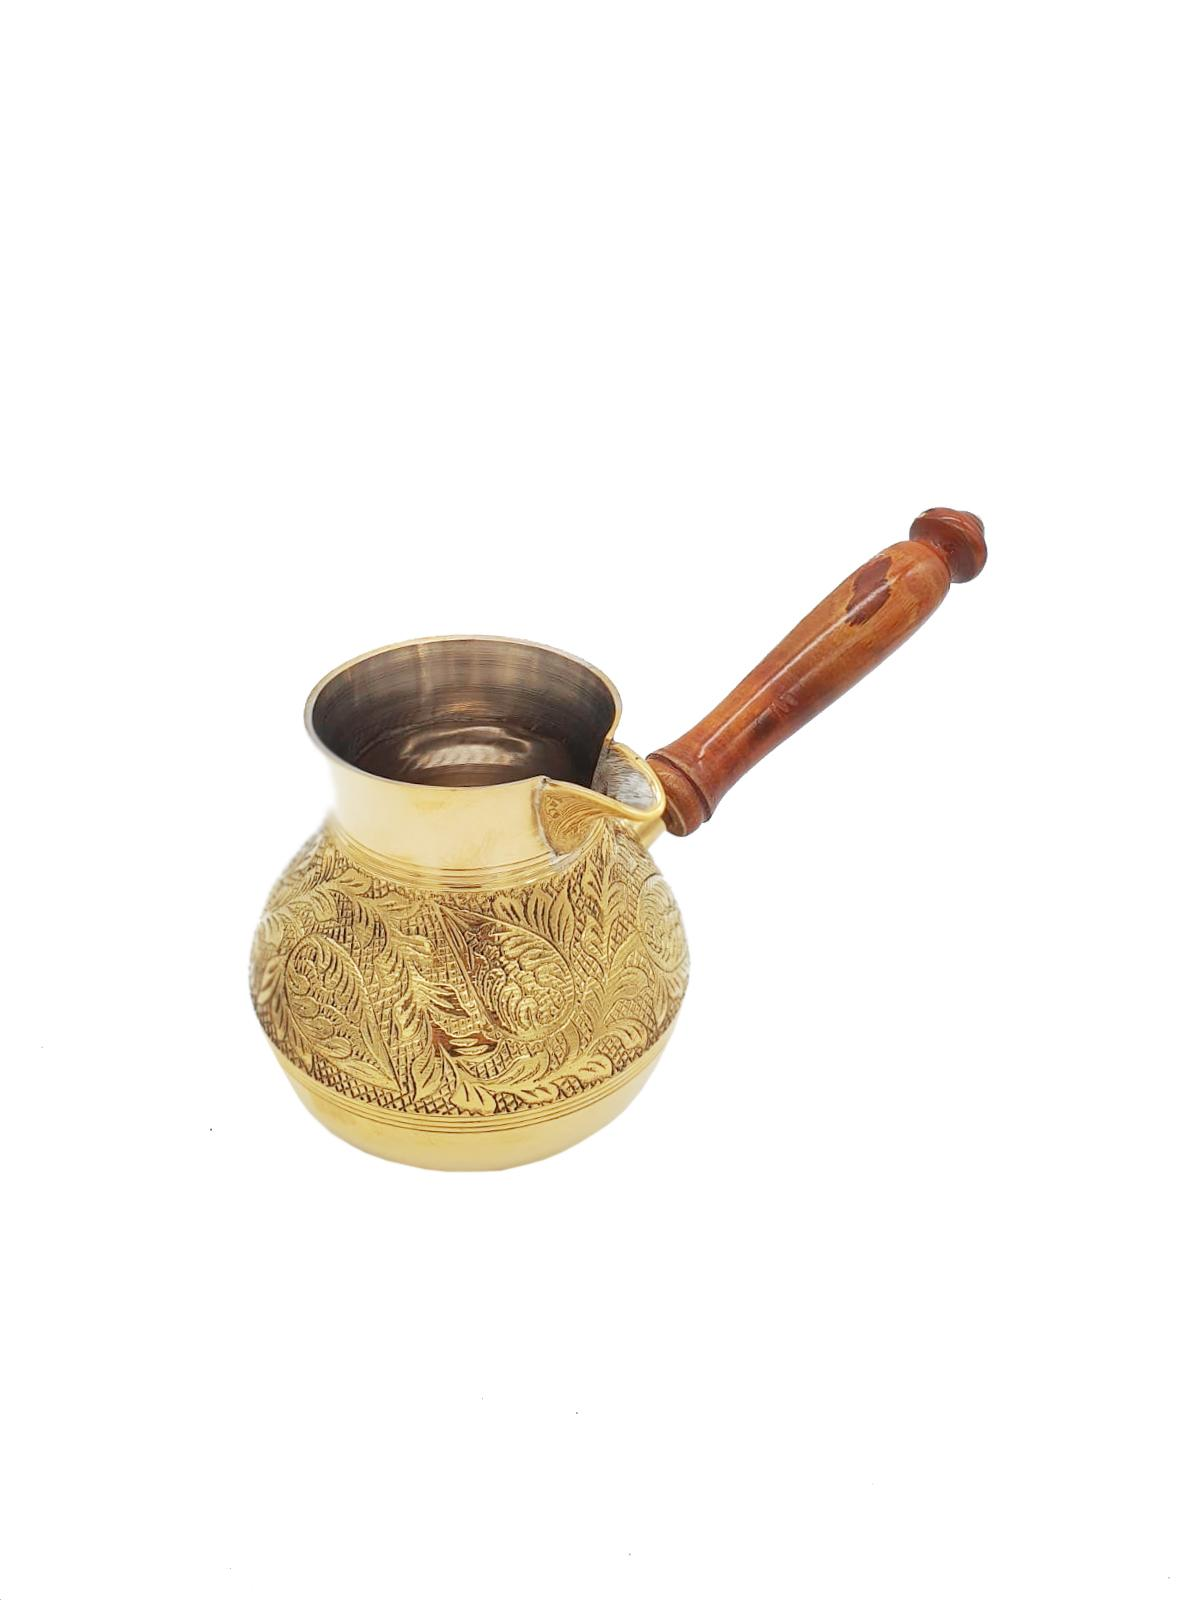 Buy Gold Copper Coffee Pot with Wooden Handle - Small